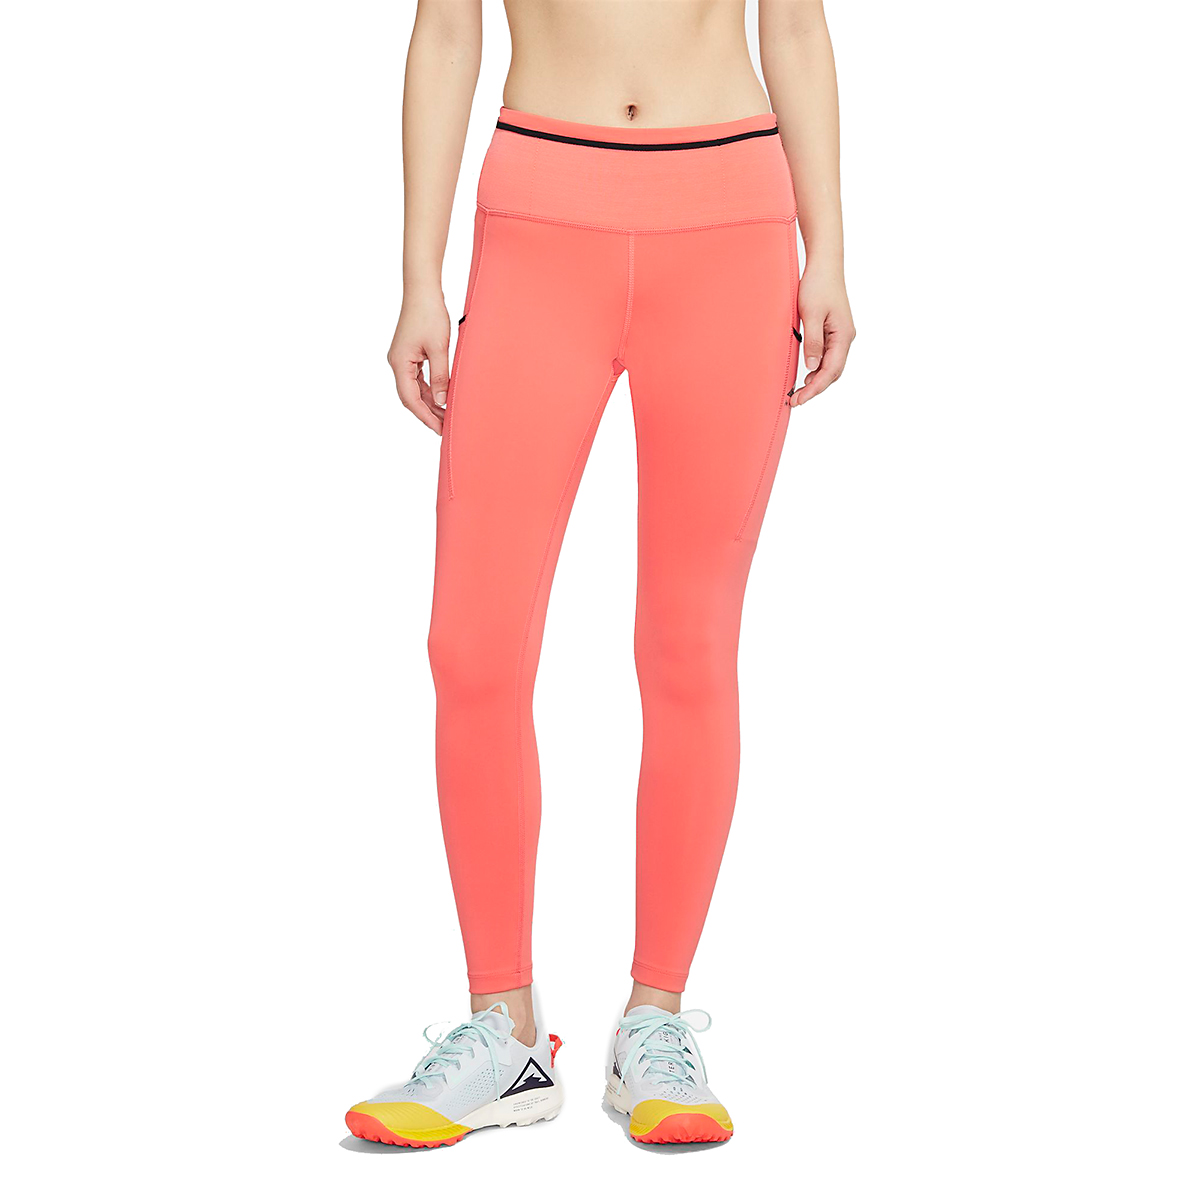 Women's Nike Epic Luxe Trail Running Tights - Color: Magic Ember/Black/Reflective Silver - Size: XXS, Magic Ember/Black/Reflective Silver, large, image 1